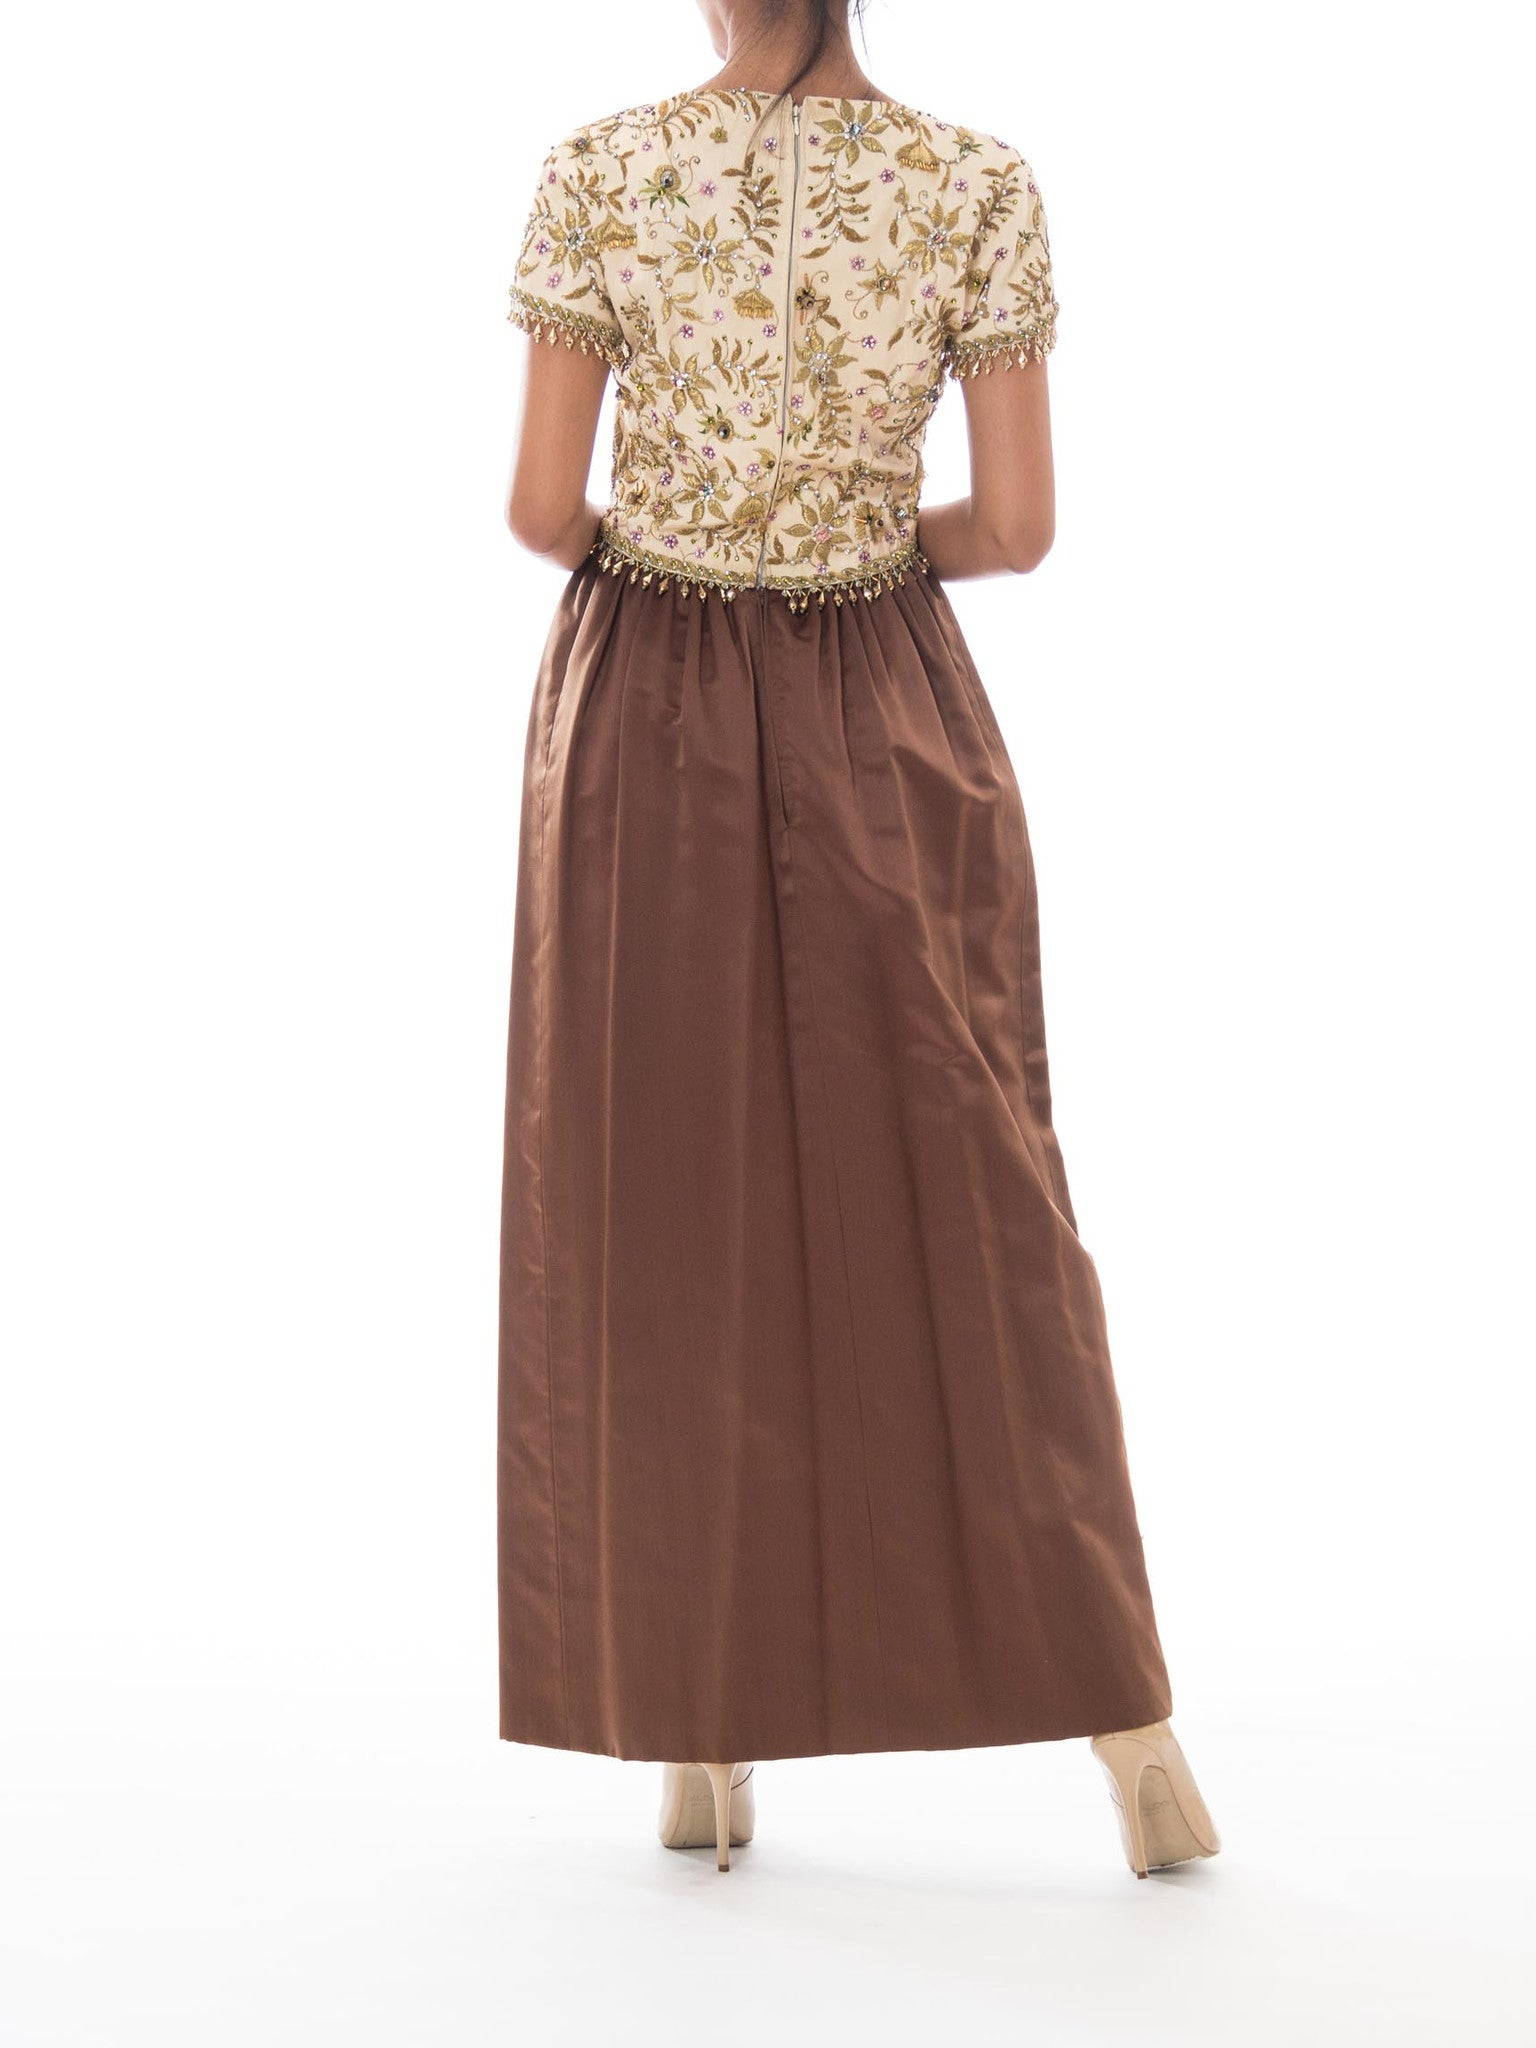 1950S BALENCIAGA Style Ivory & Brown Silk Duchess Satin Gown With Elaborate Gold Metalwork Embroidery Crystal Beading